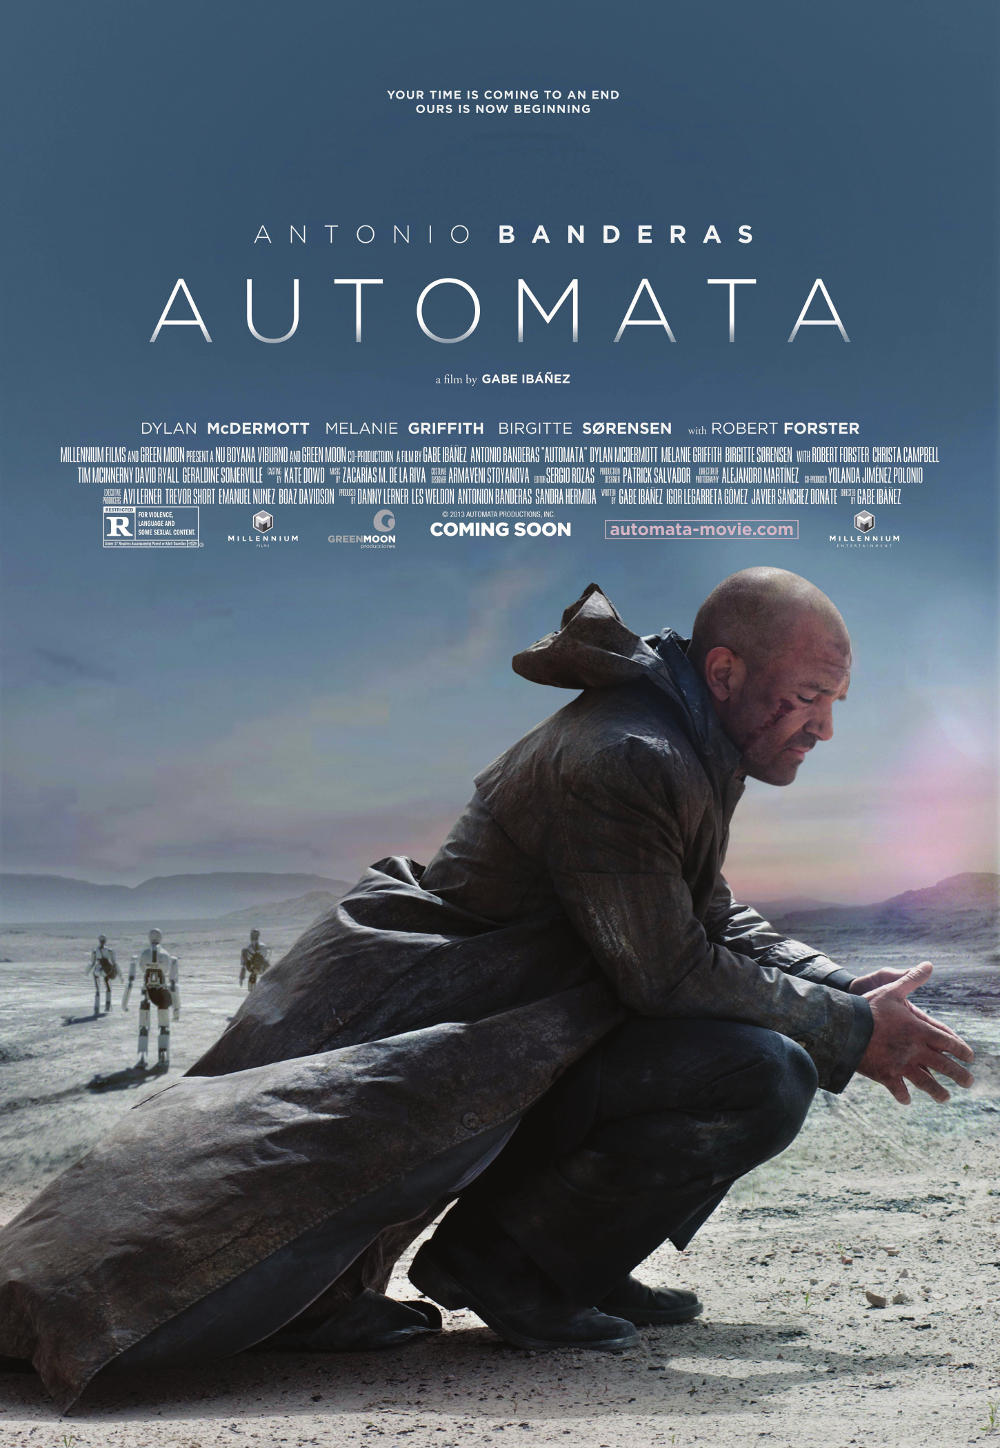 Antonio Banderas New Movie Automata 2014 Release Details